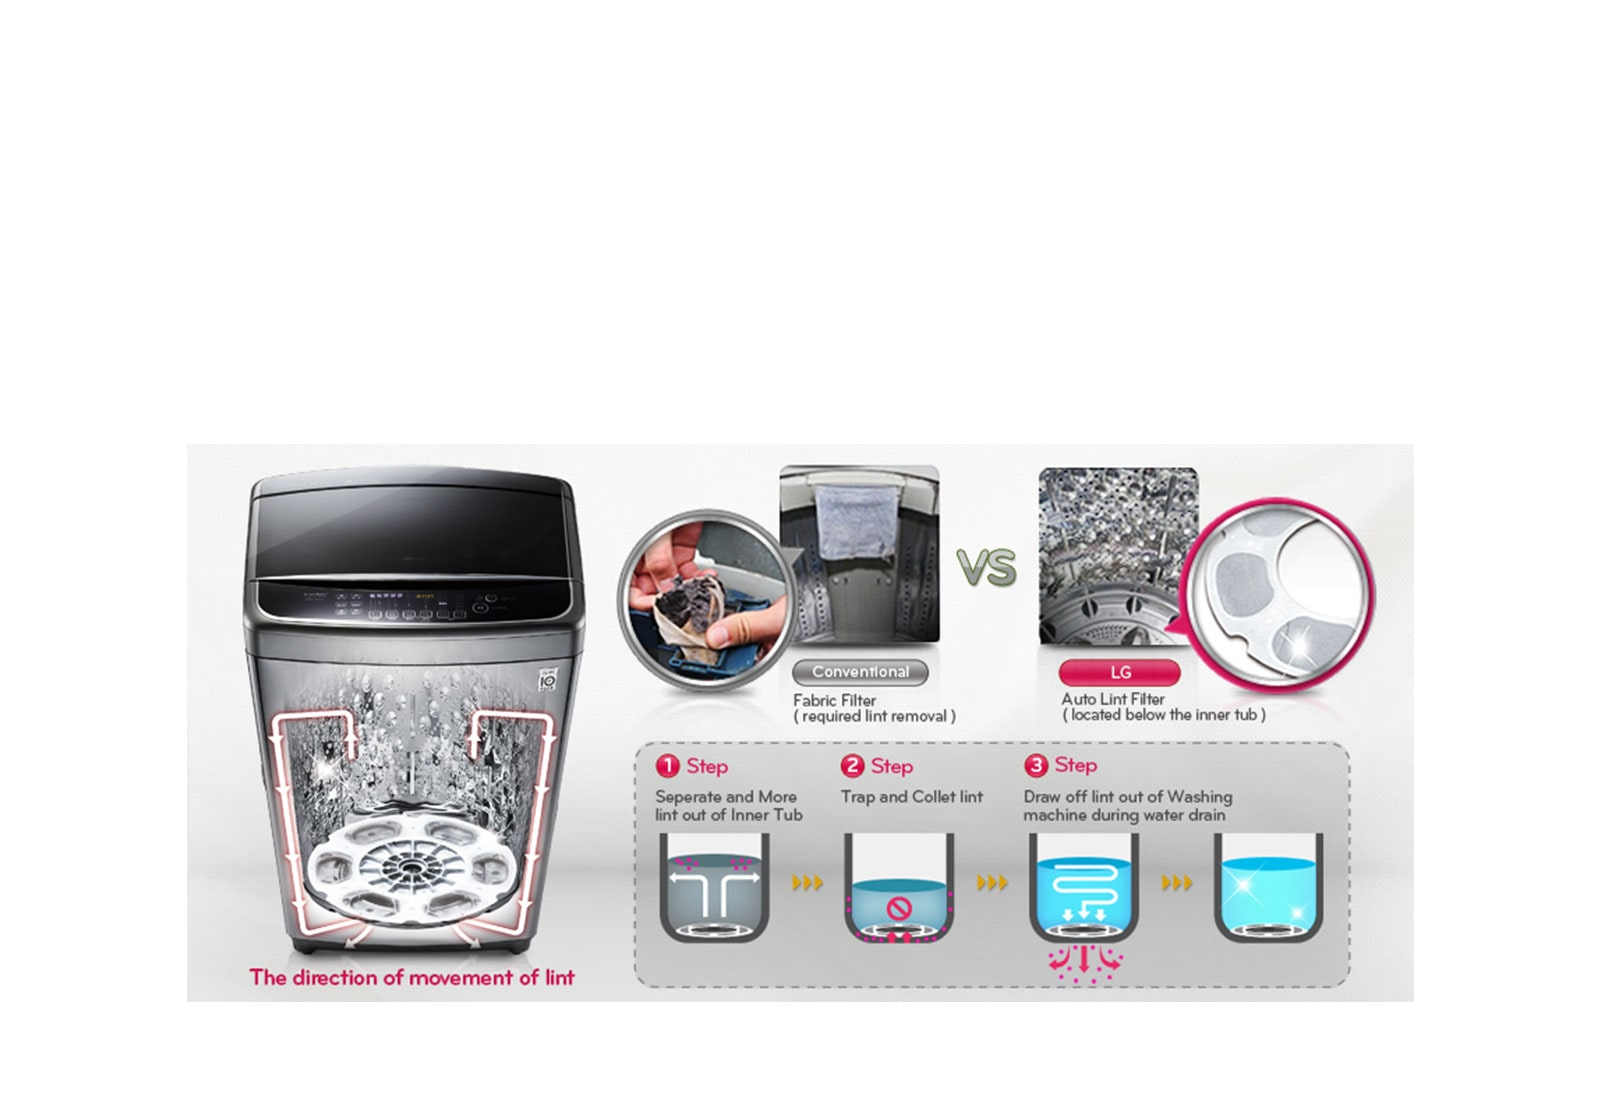 T2515VSAV-top-load-washing-machines_Auto-Lint-Clean-System_D